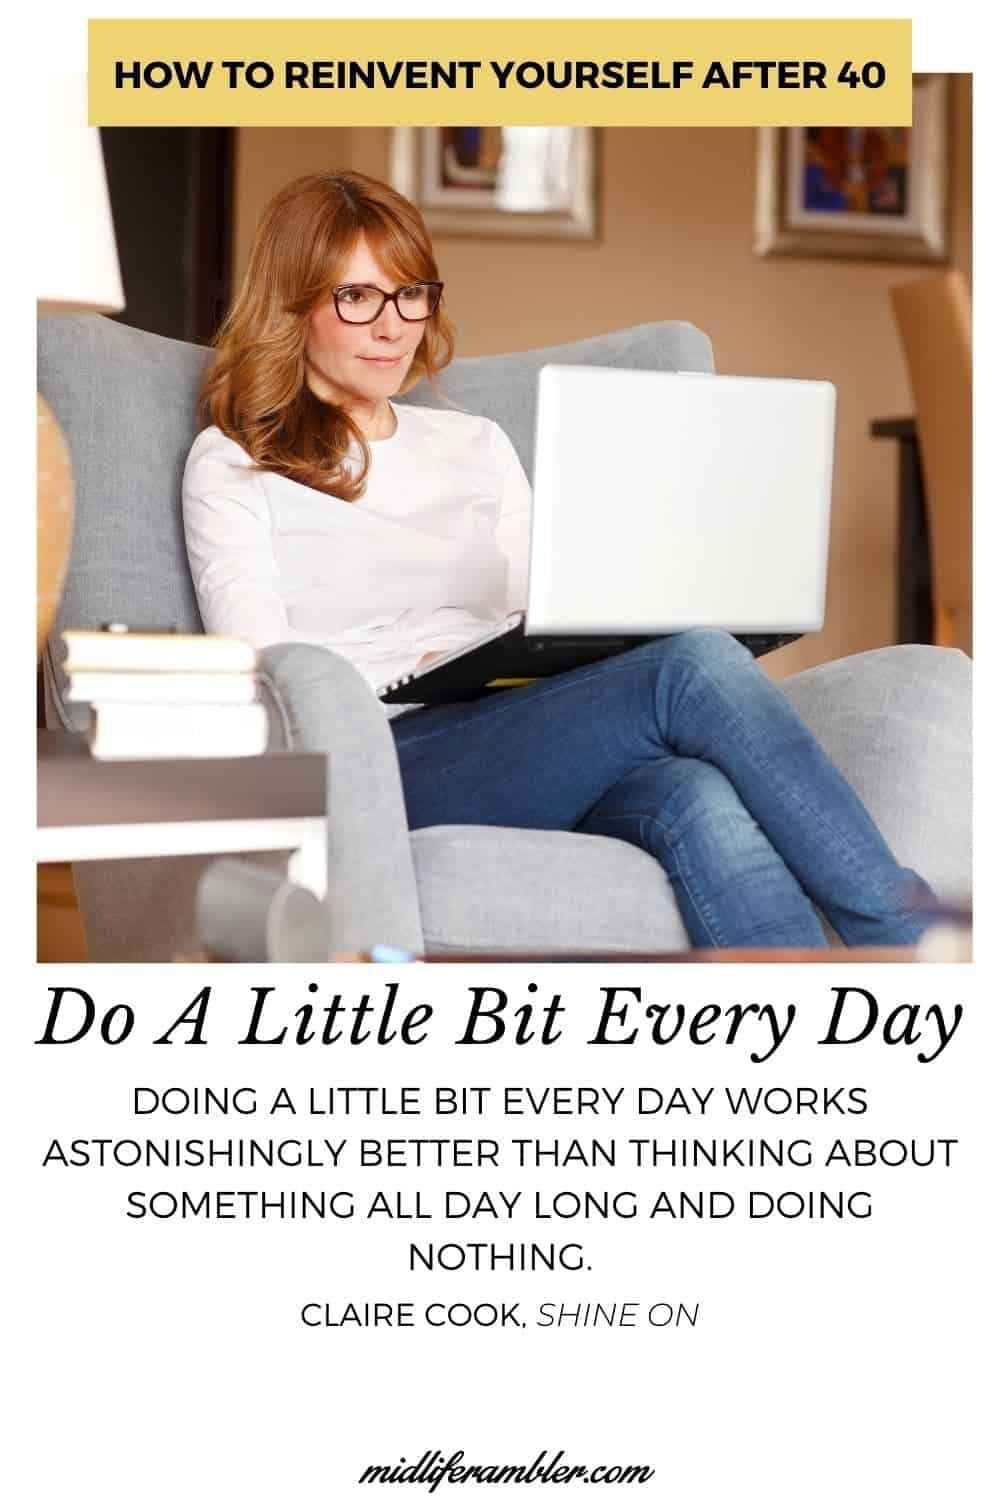 Woman with laptop working on reinventing her life.